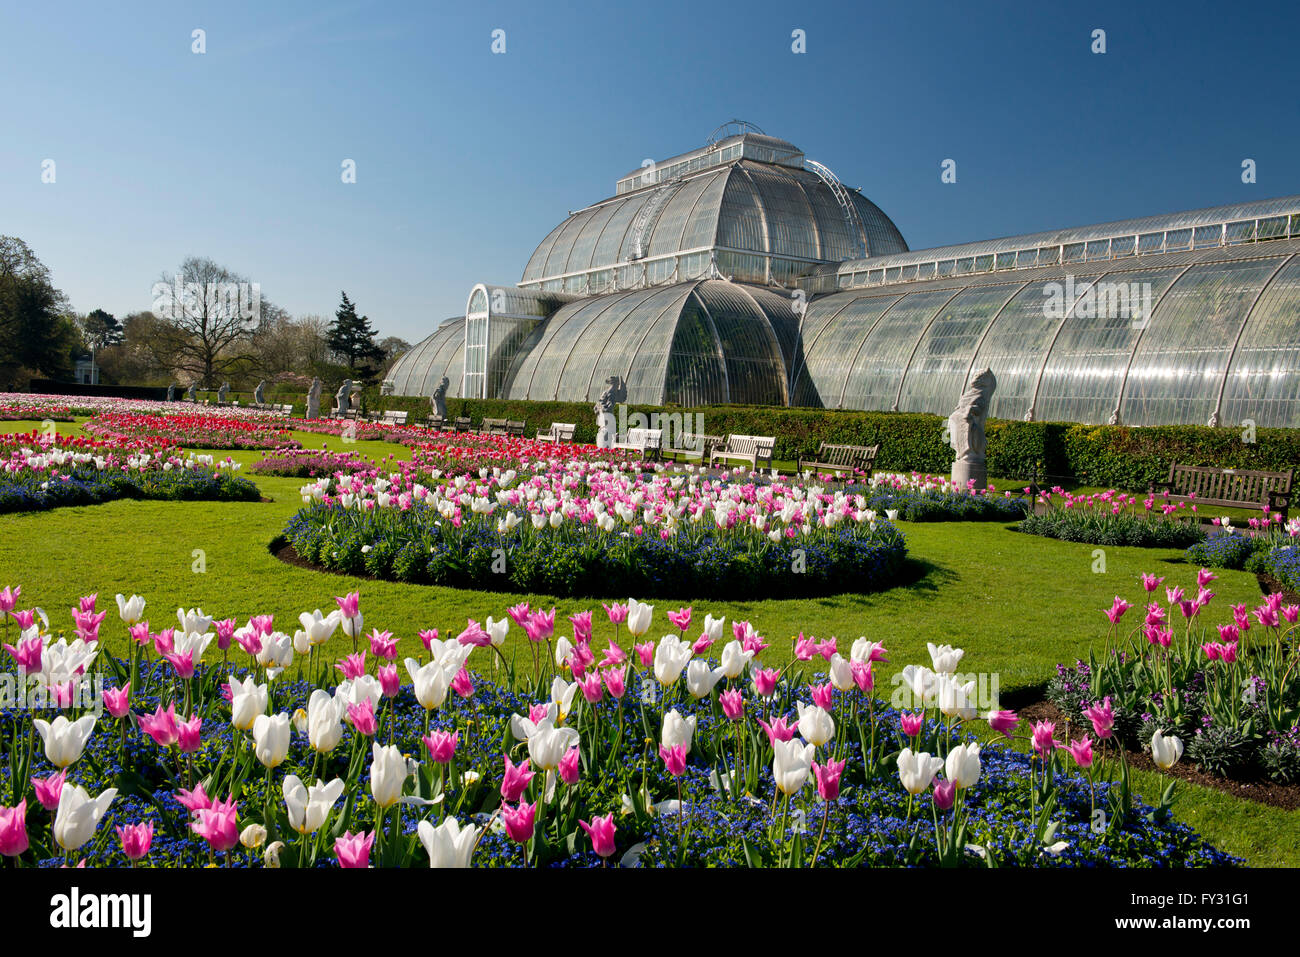 Pink and white tulips on a parterre in front of the Palm House at Kew Gardens, London, UK - Stock Image